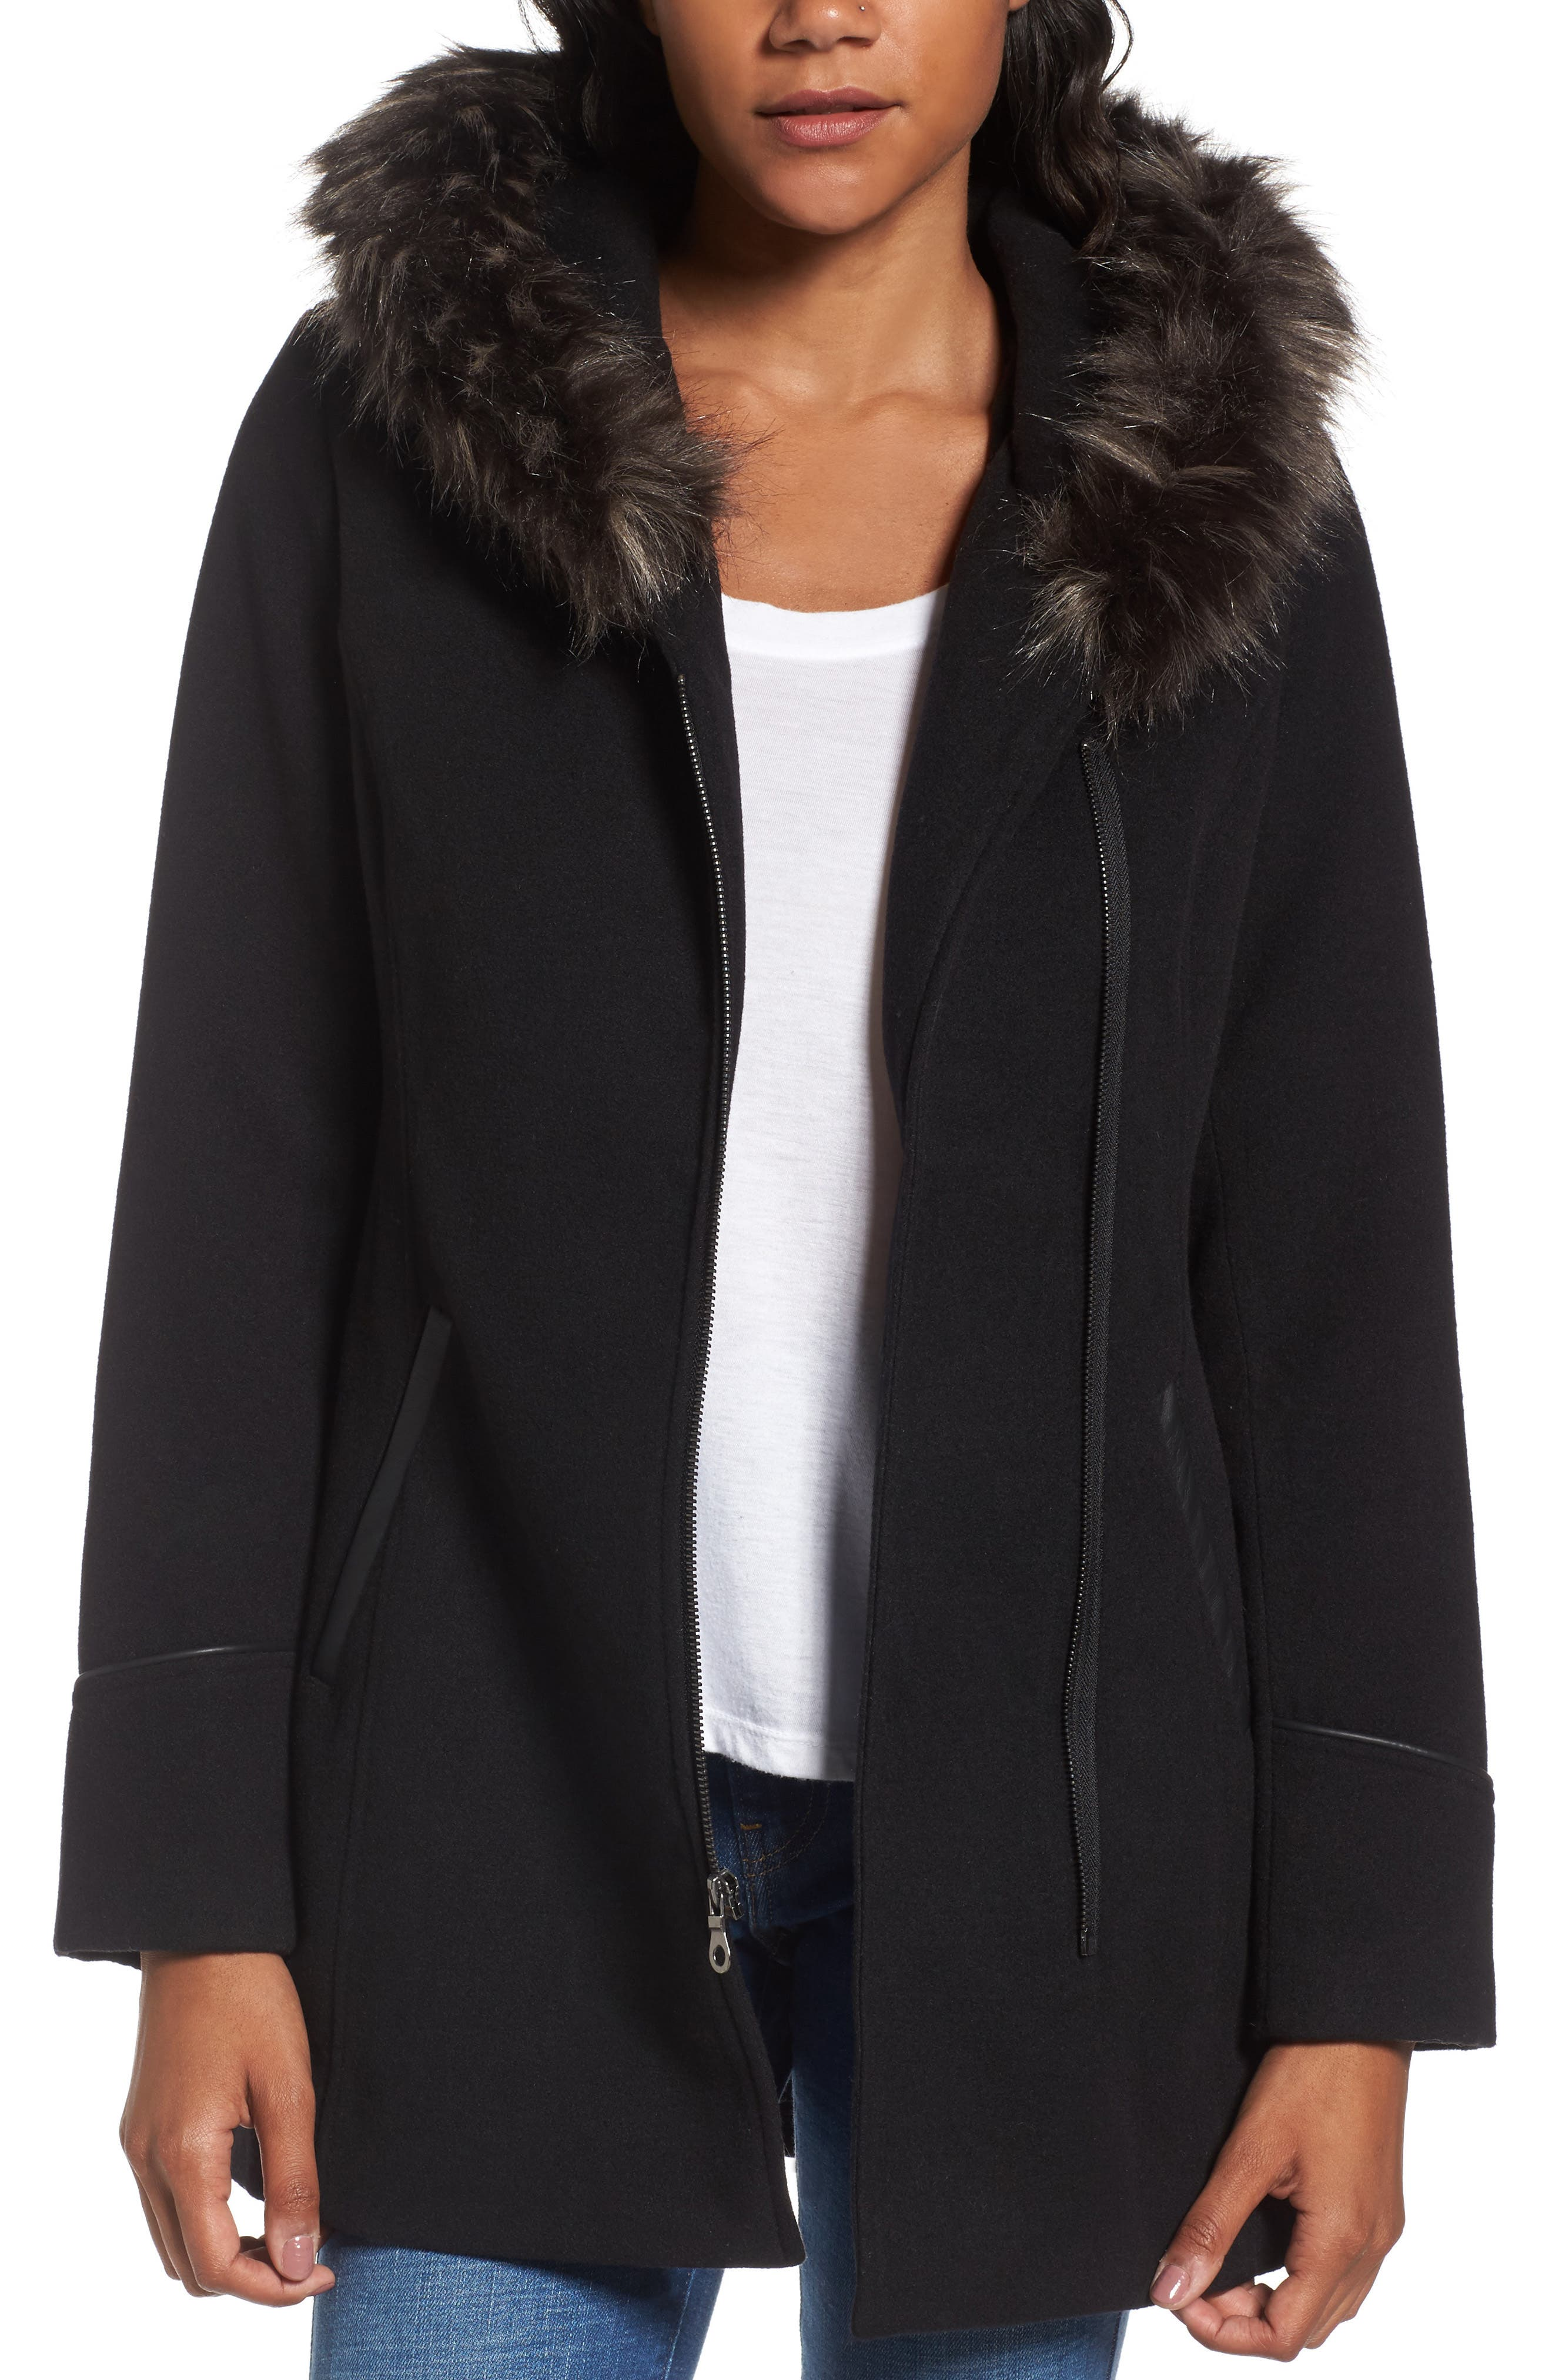 Maralyn & Me Asymmetrical Zip Jacket with Faux Fur Collar